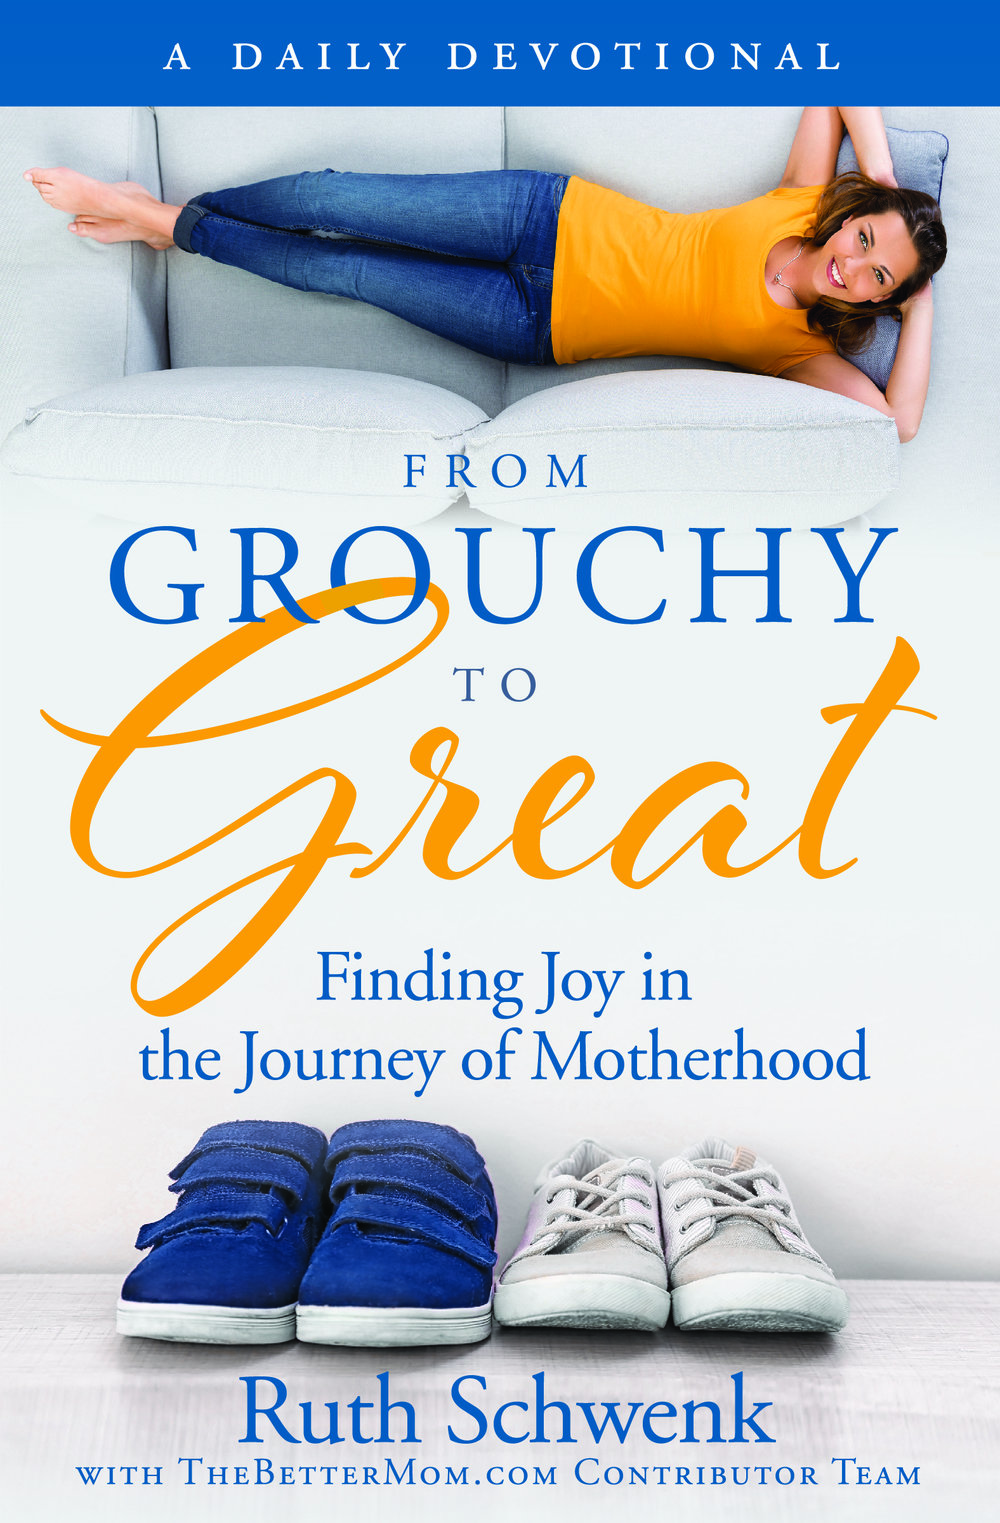 From Grouchy to Great - Finding Joy in the Journey of Motherhood